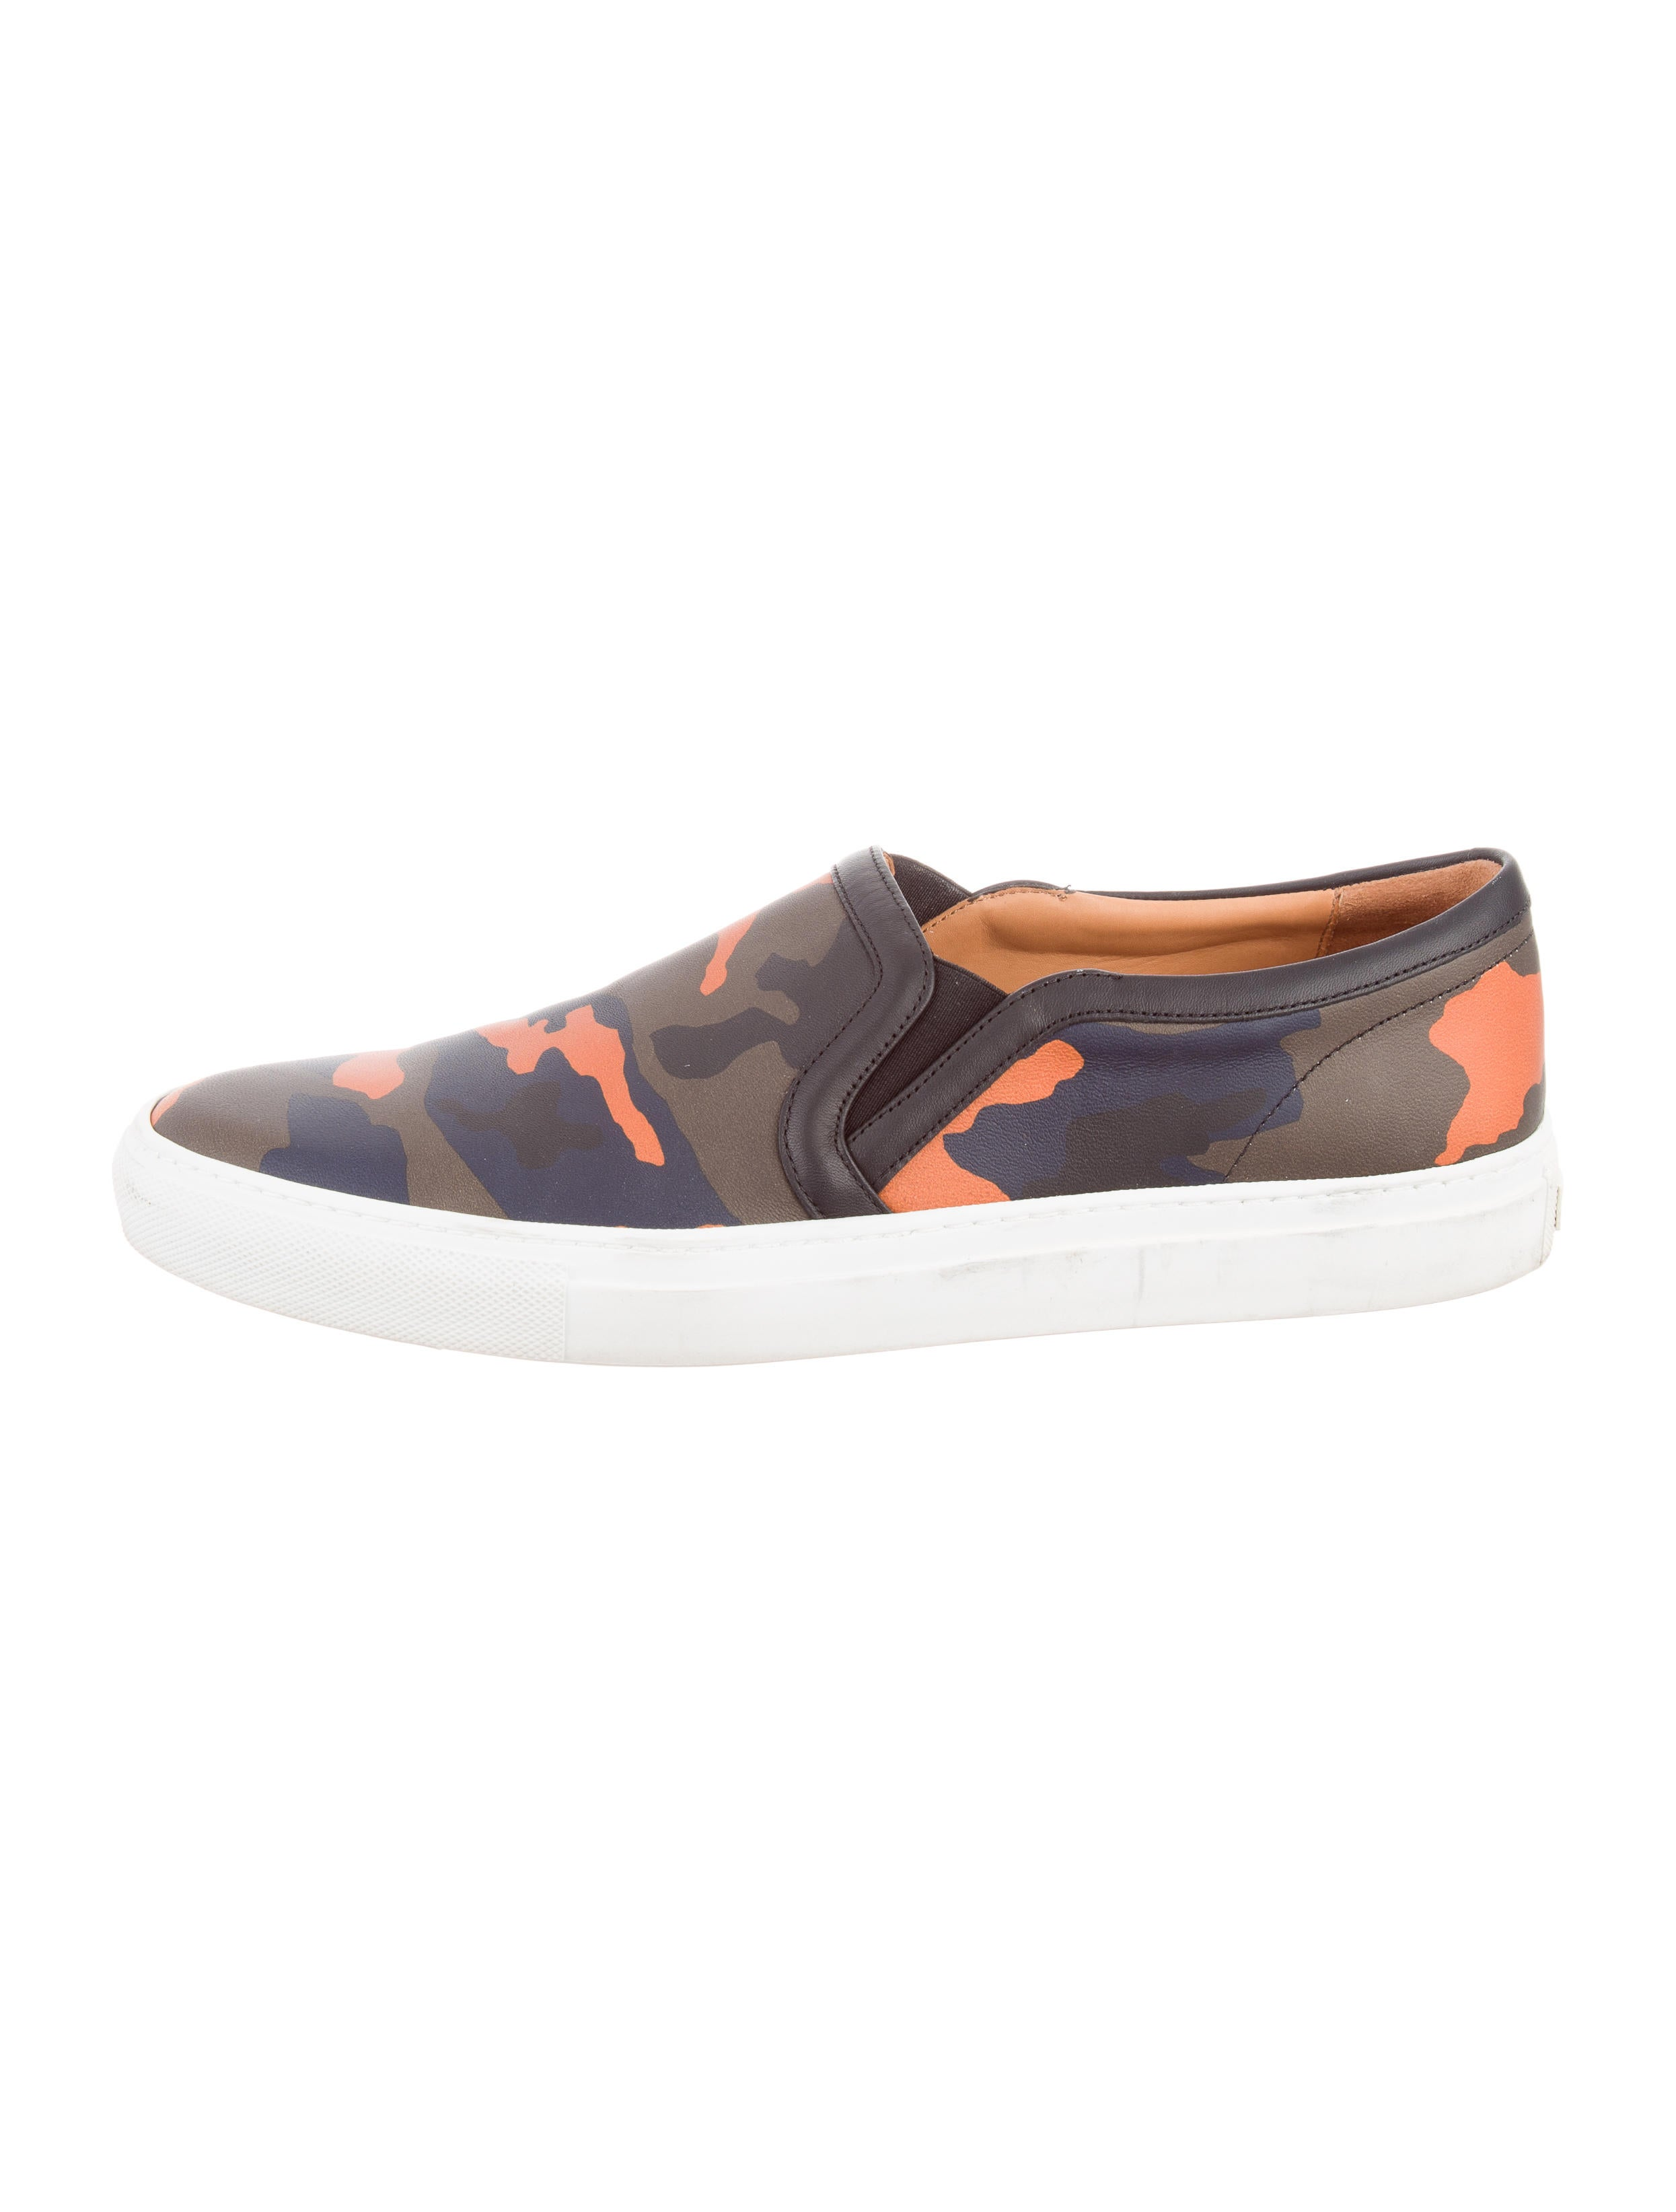 givenchy camouflage slip on sneakers shoes giv38047